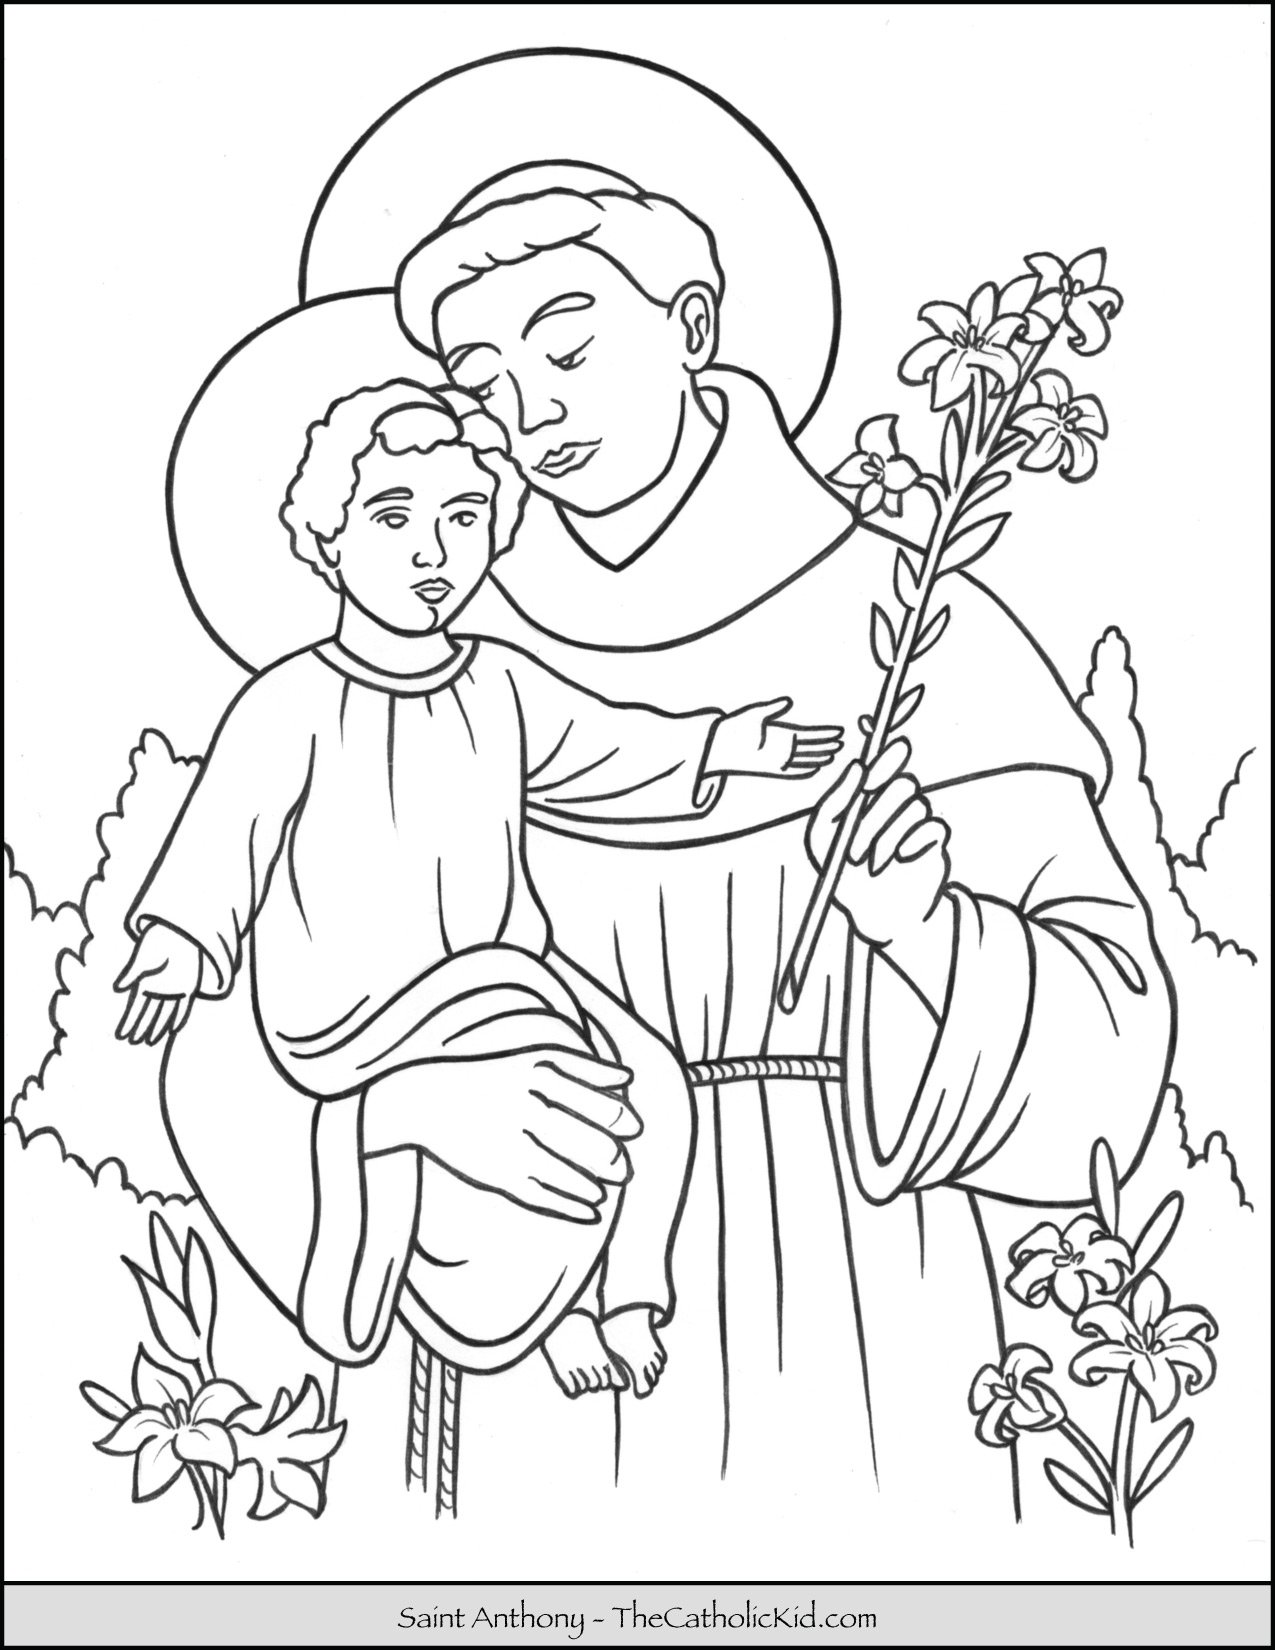 Saint Anthony Coloring Page